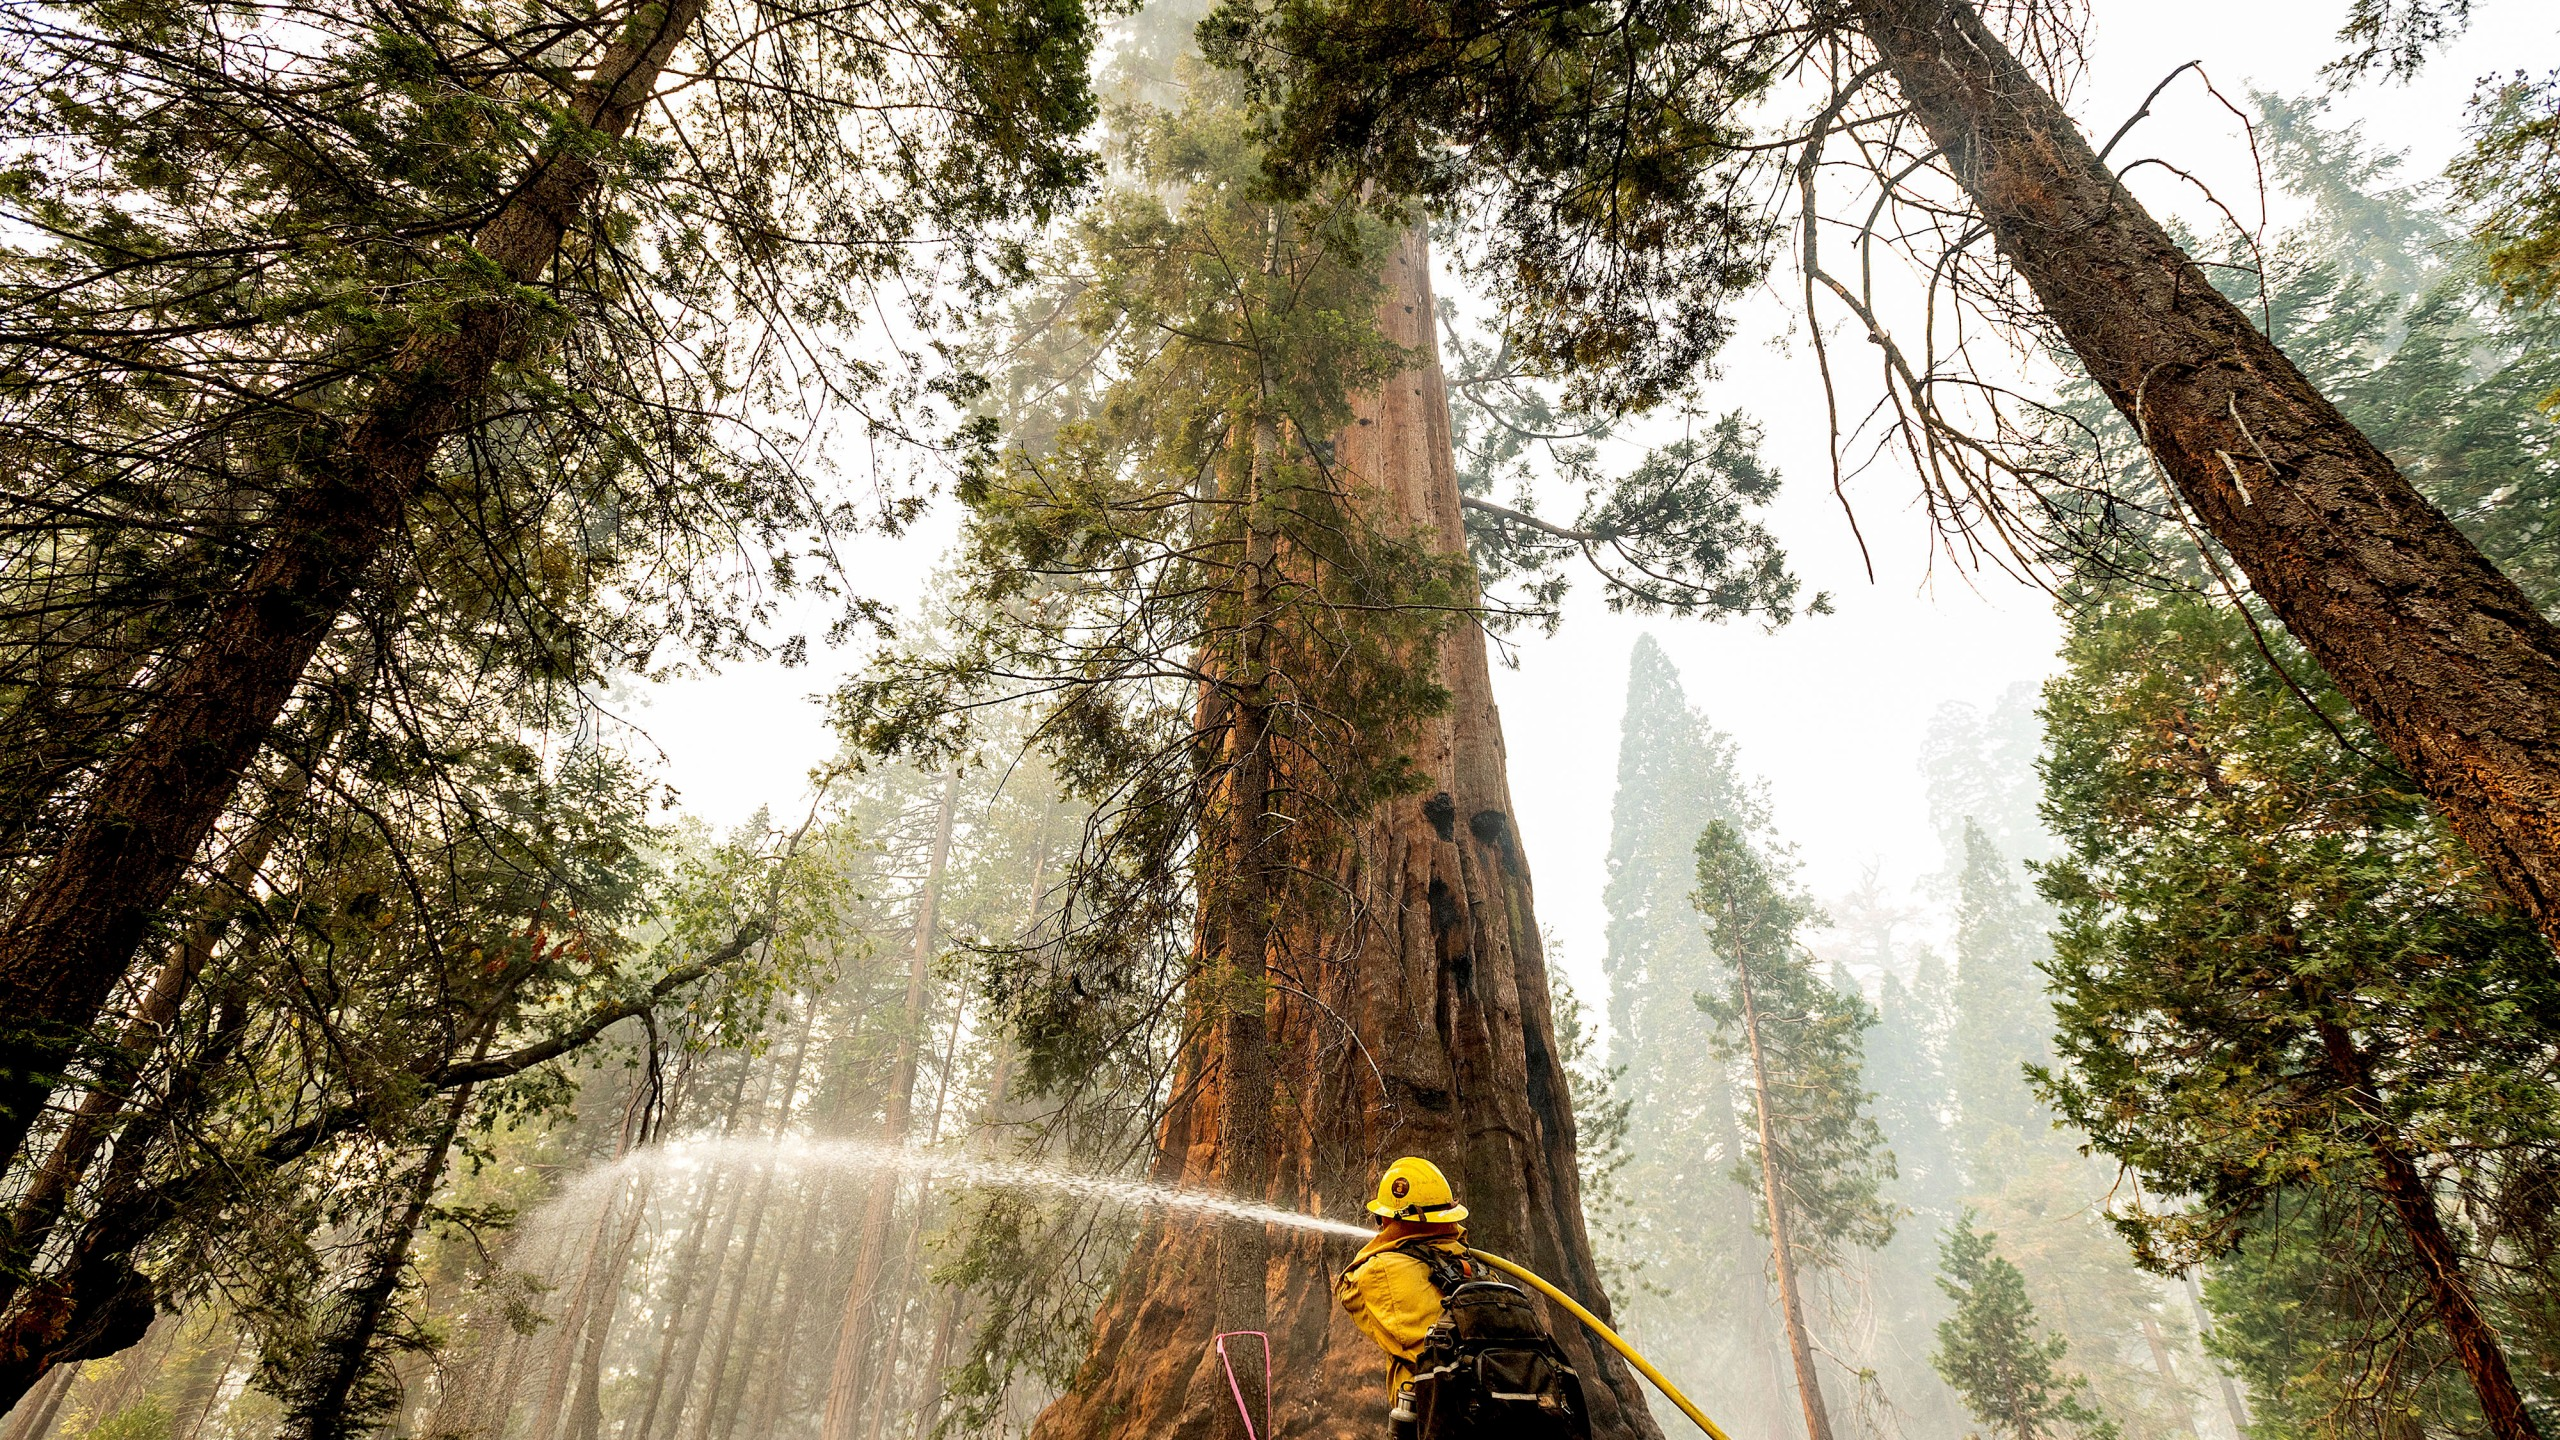 A firefighter hoses down hot spots around a sequoia tree in the Trail of 100 Giants of Sequoia National Forest, Calif., as the Windy Fire burns on Sept. 20, 2021. According to firefighters, the tree sustained fire damage when the fire spotted into its crown. (AP Photo/Noah Berger)